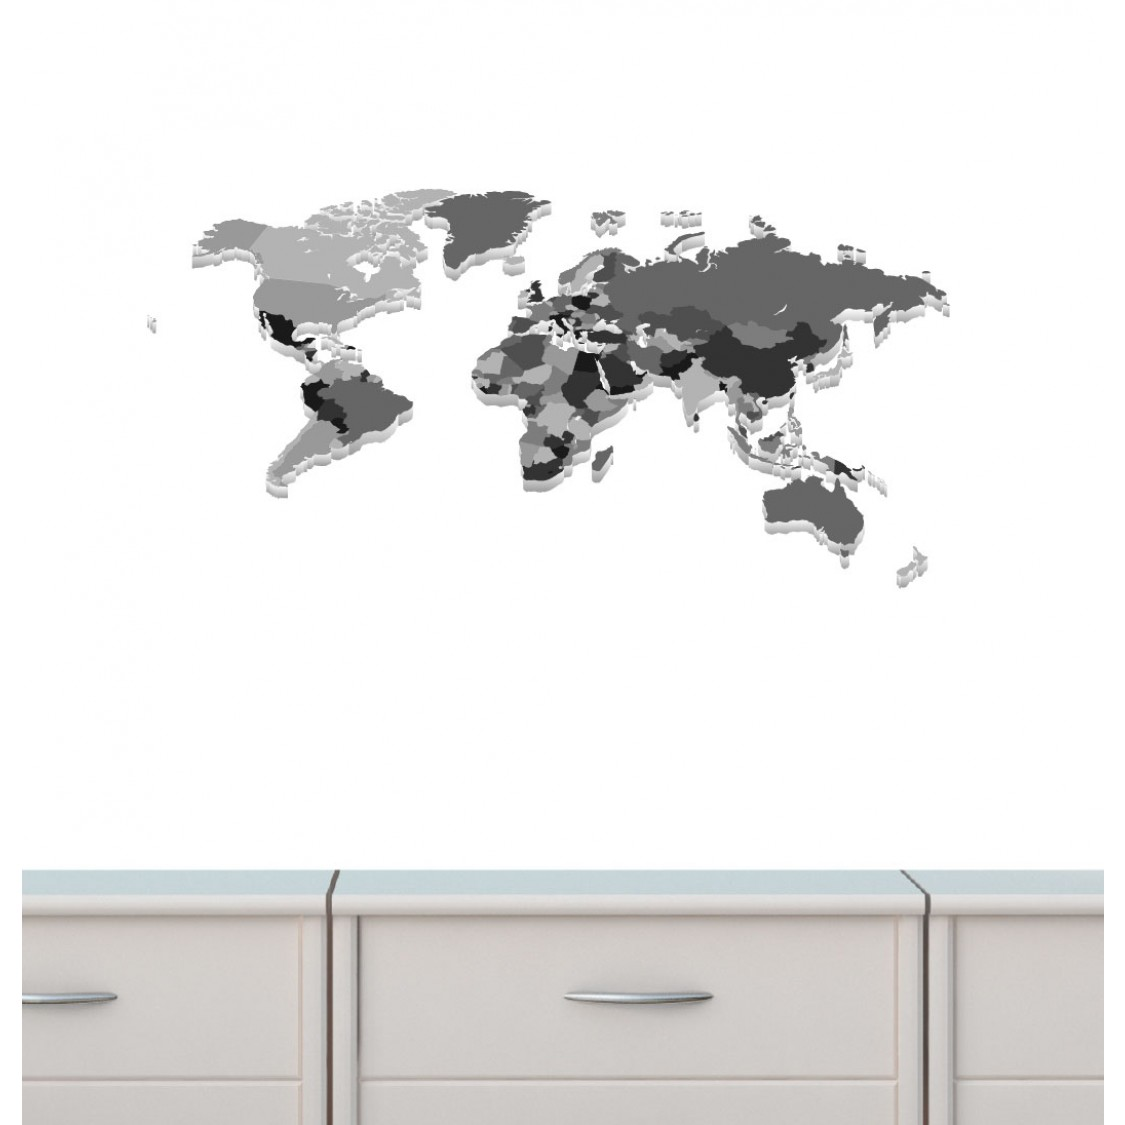 Colorful Large Wall Decals With World Map Wall Stickers For Kids Rooms